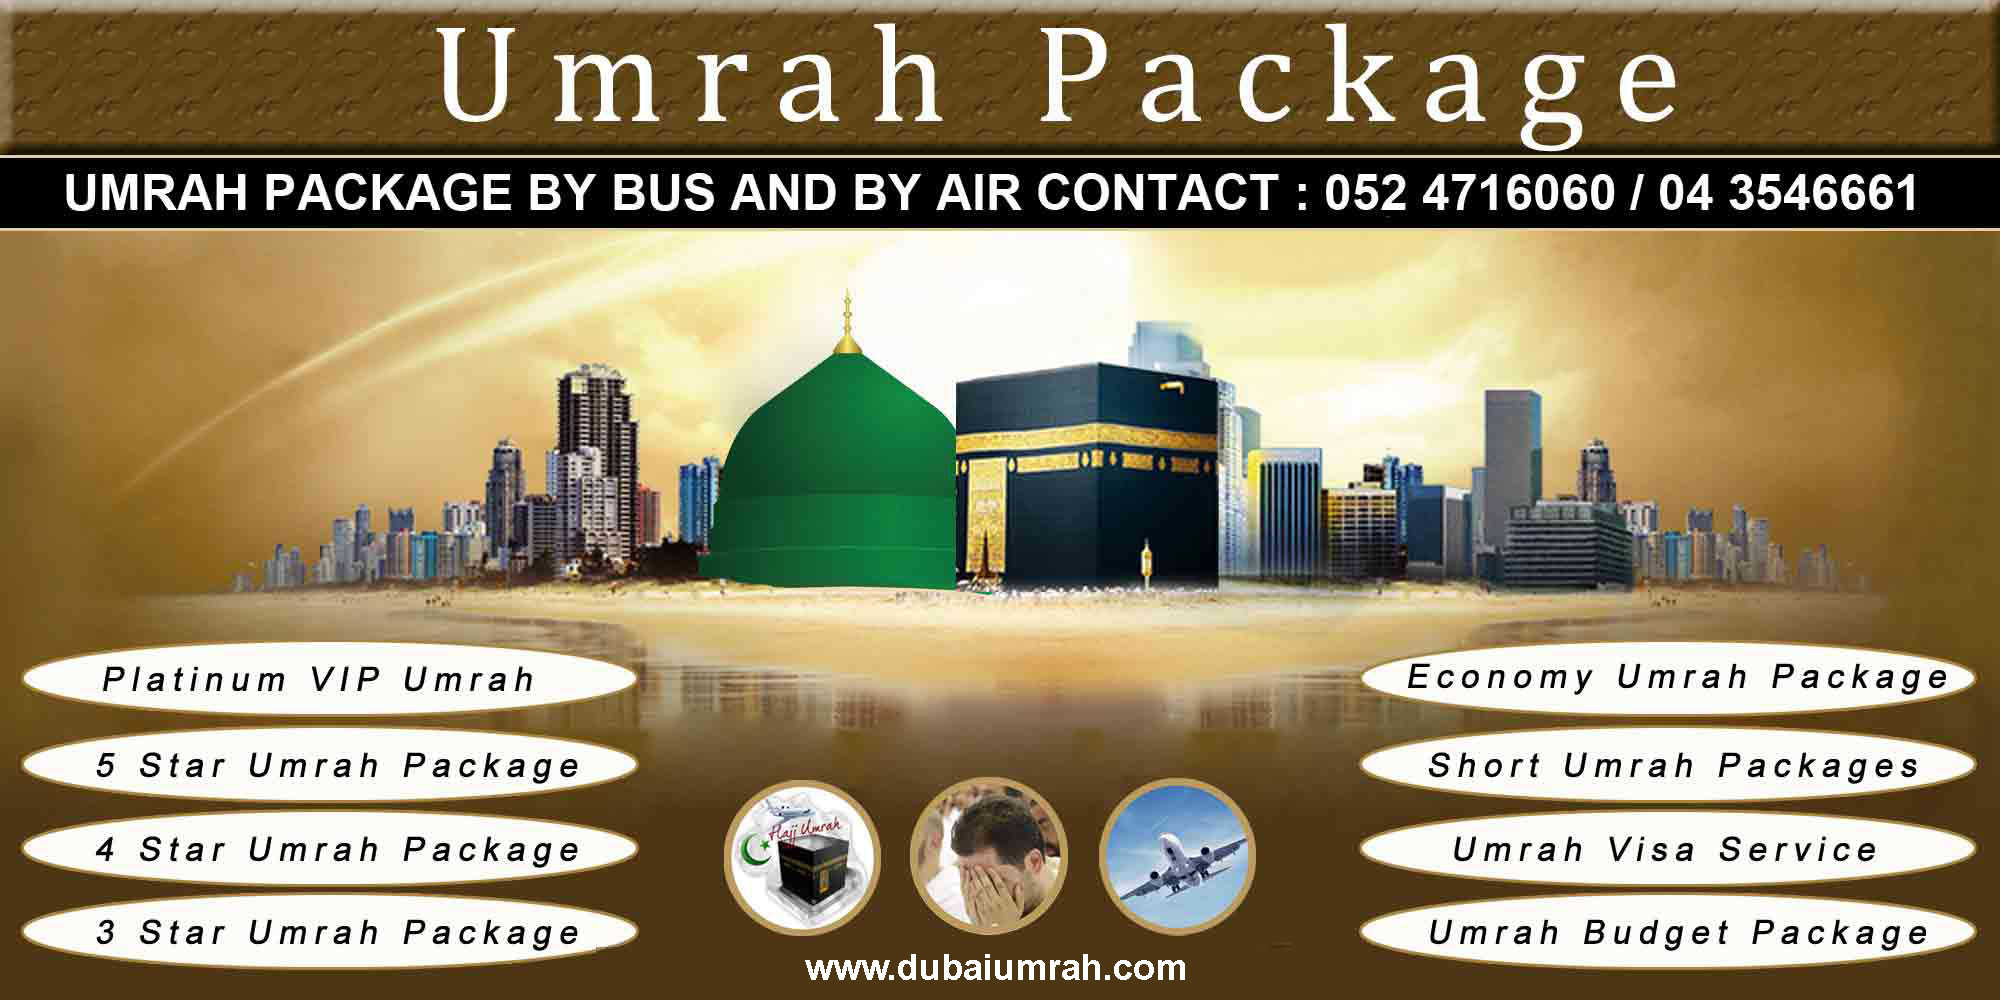 Umrah Banner: Umrah Package By Bus & Umrah